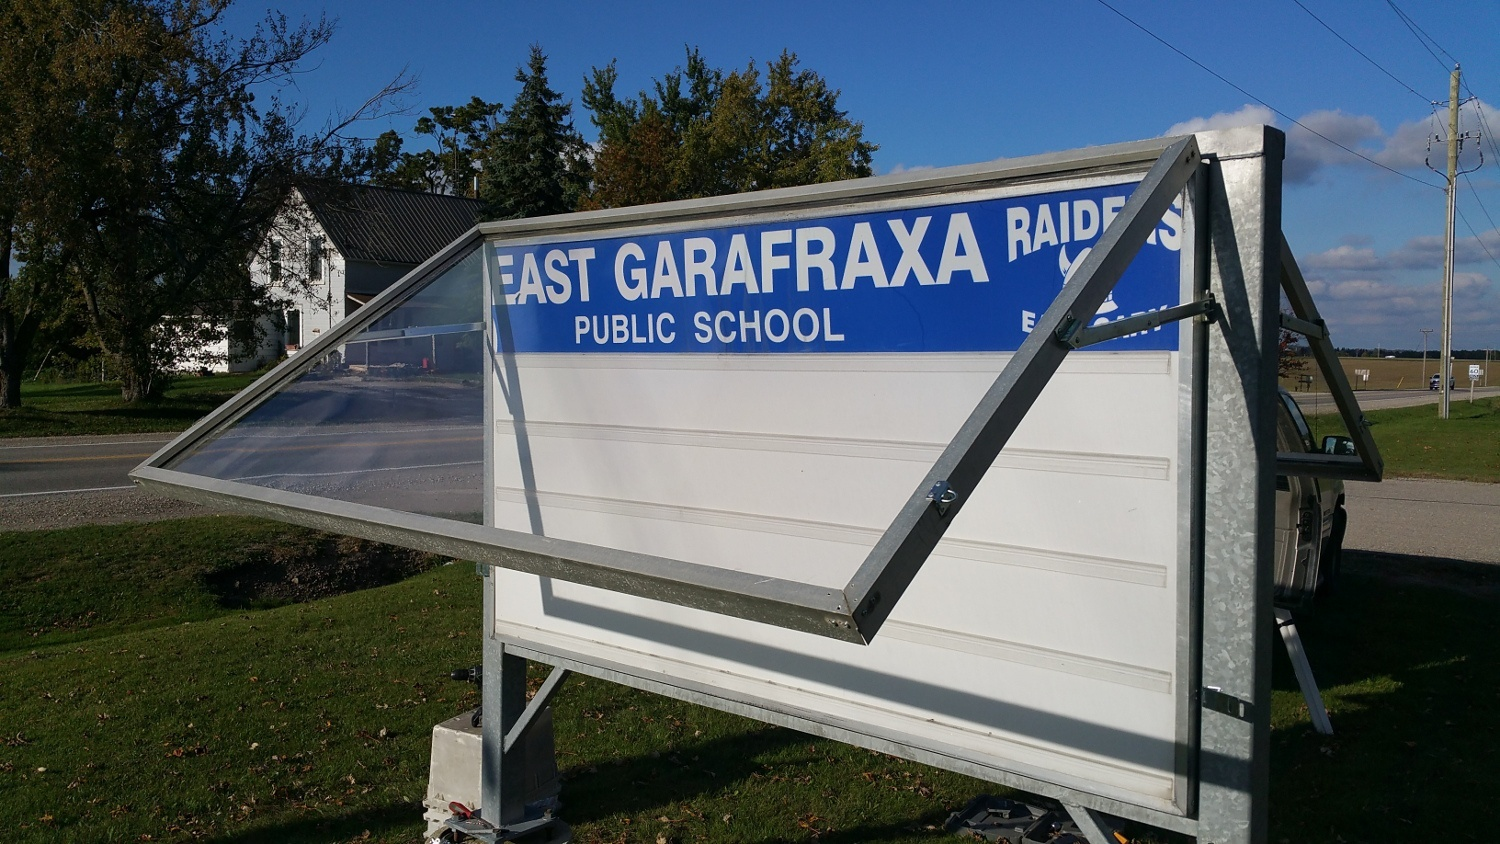 east garafraxa sign repair